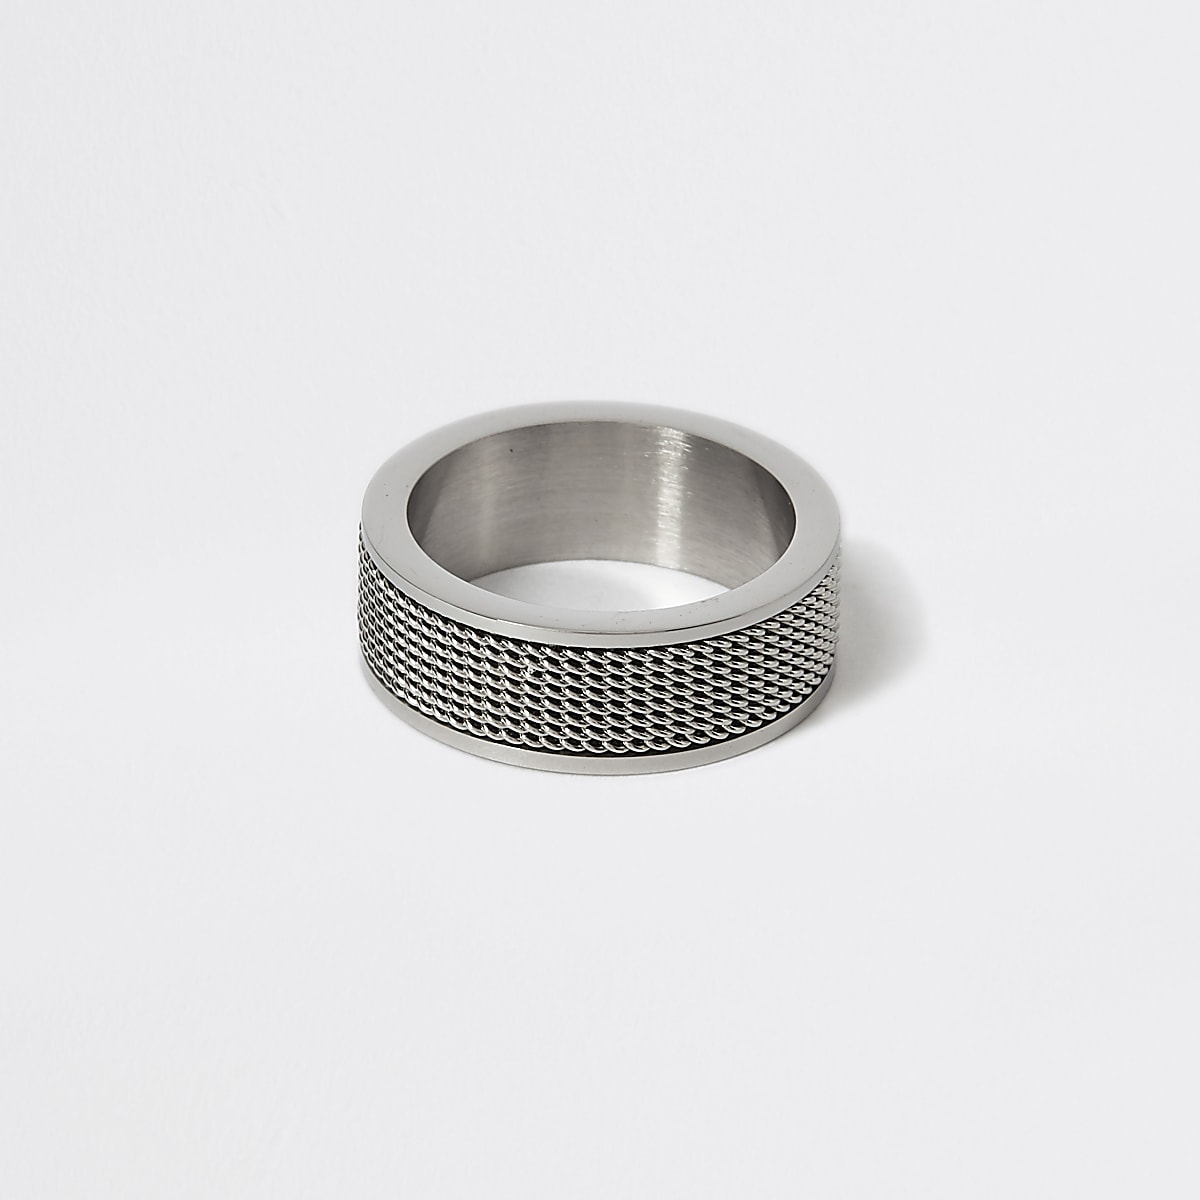 Silver colour mesh textured ring